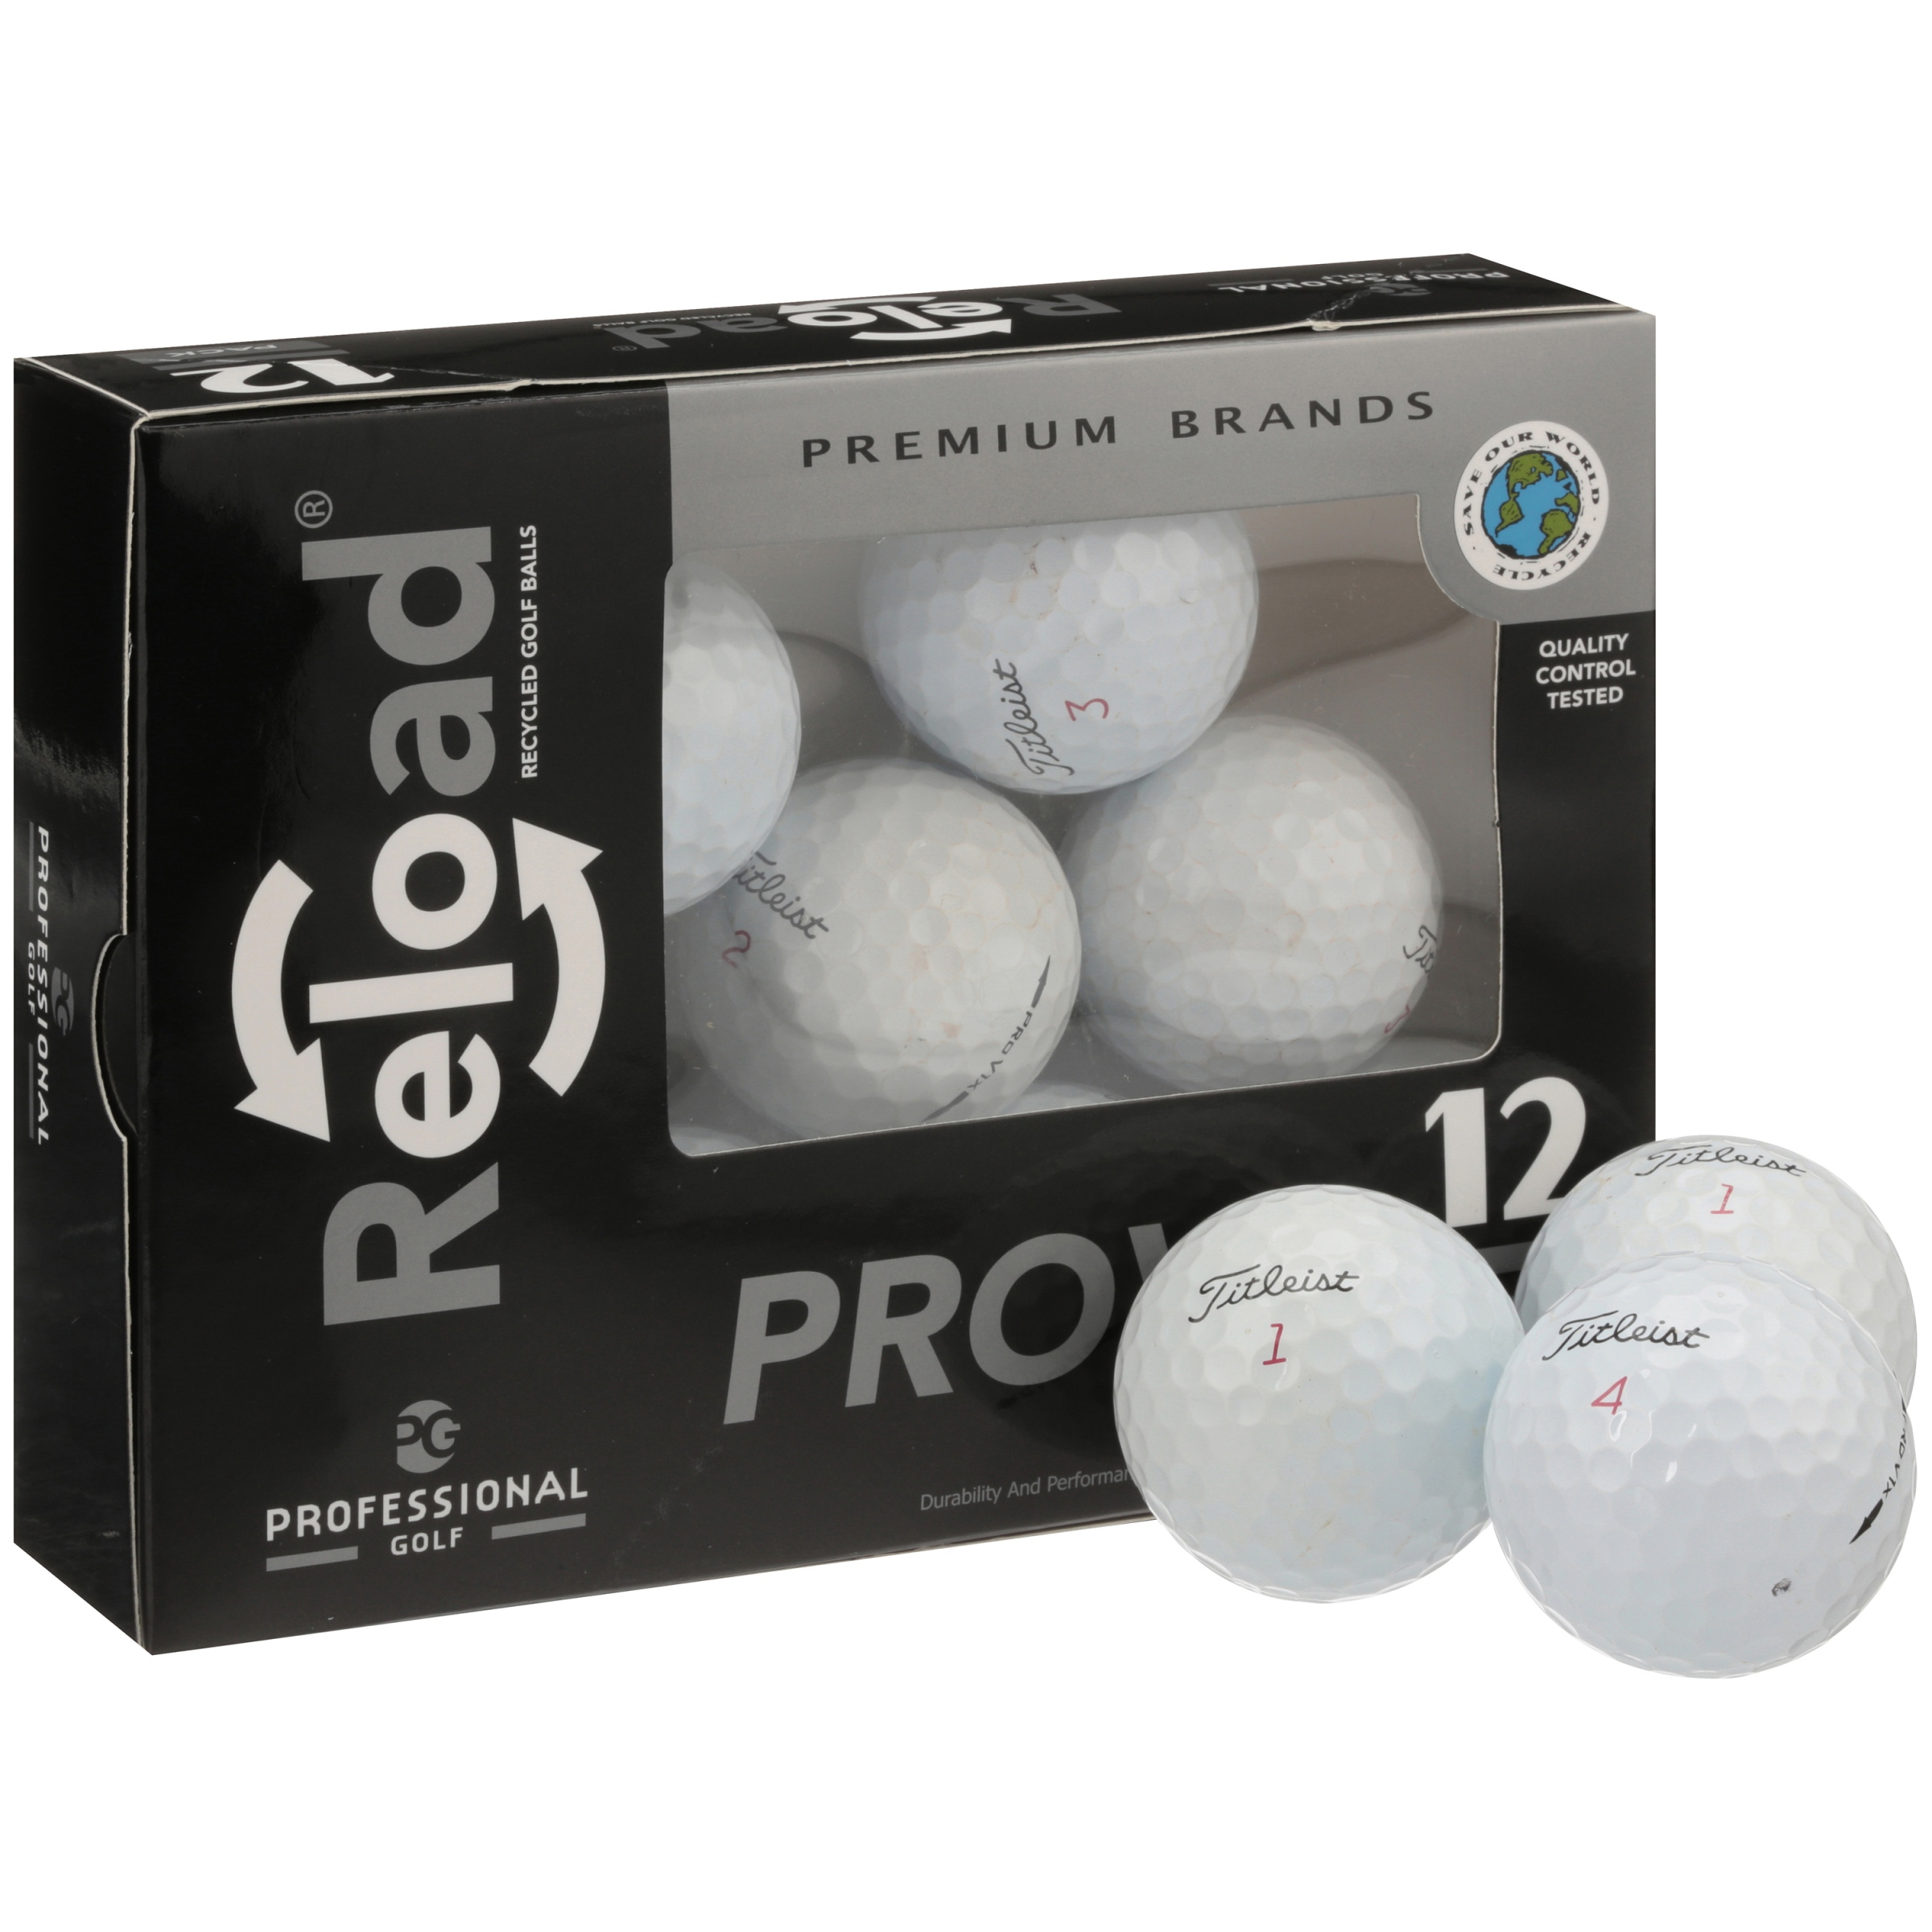 Titleist Pro V1x 2012 - Mint Quality - 12 Golf Balls